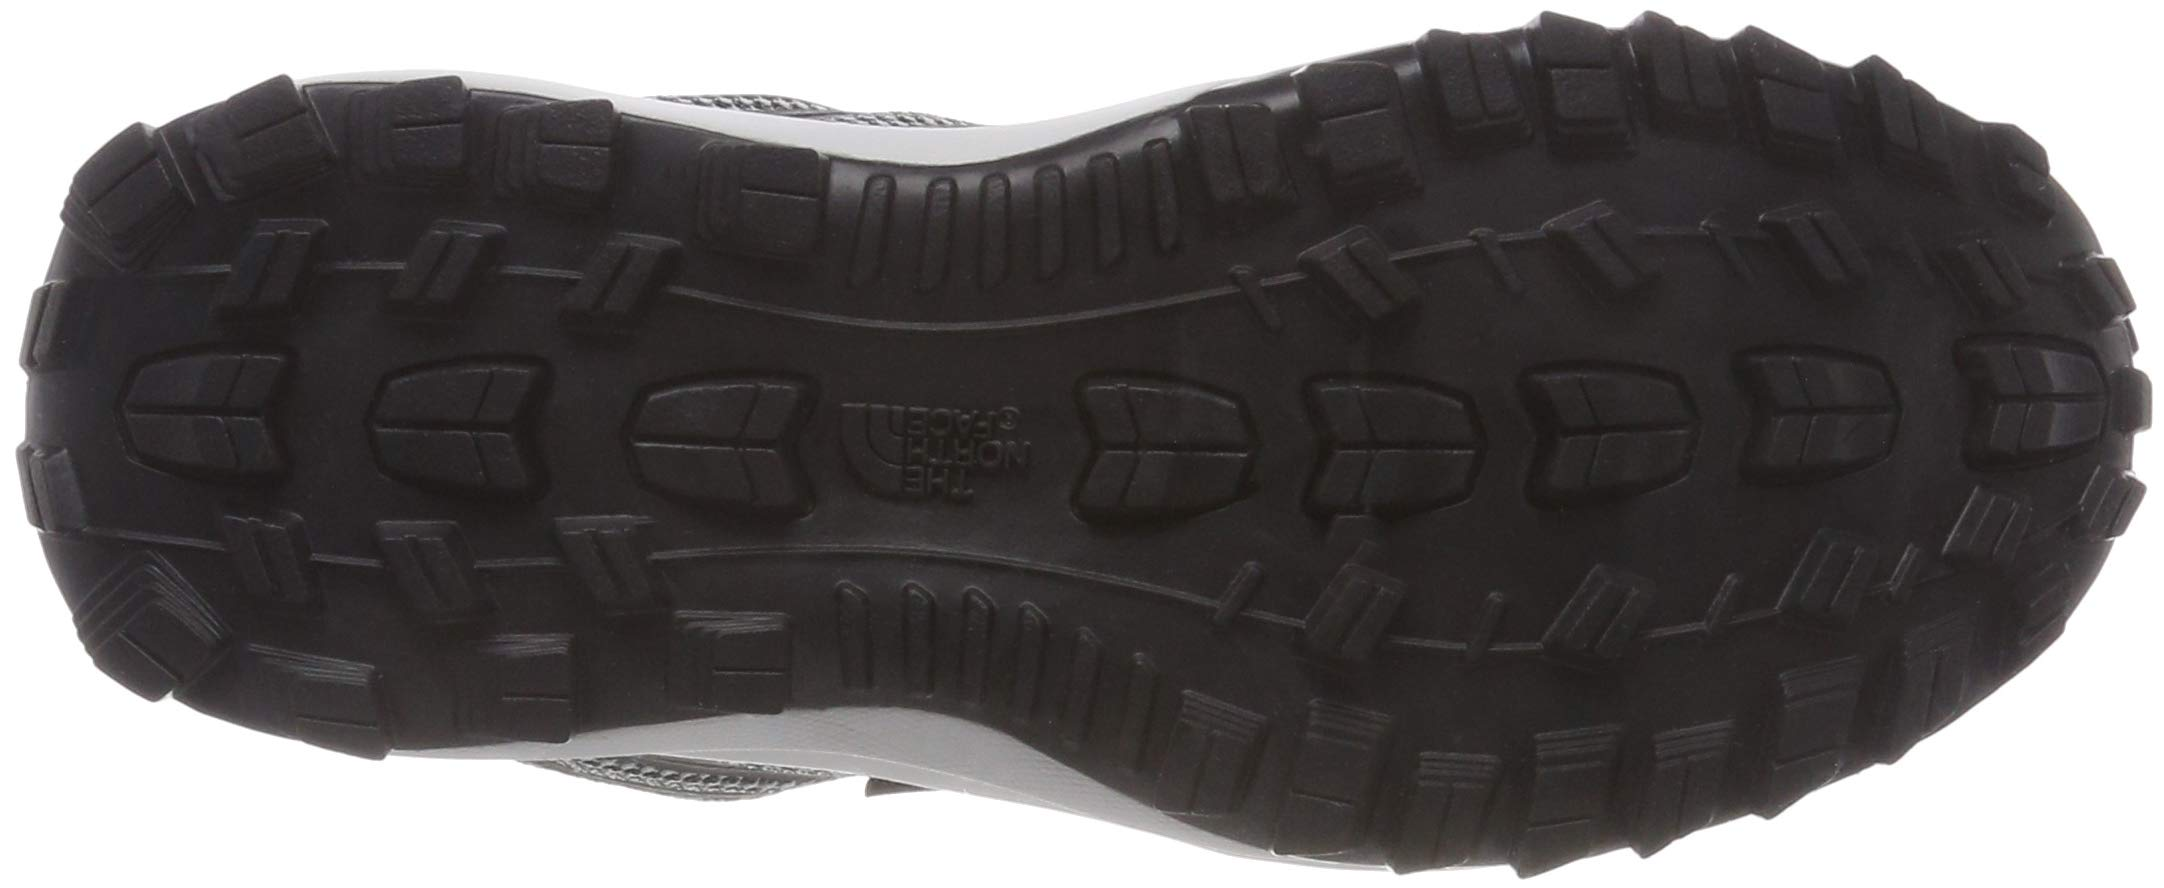 79f8575c5 The North Face Women's Litewave Fastpack Gore-Tex Low Rise Sneakers ...